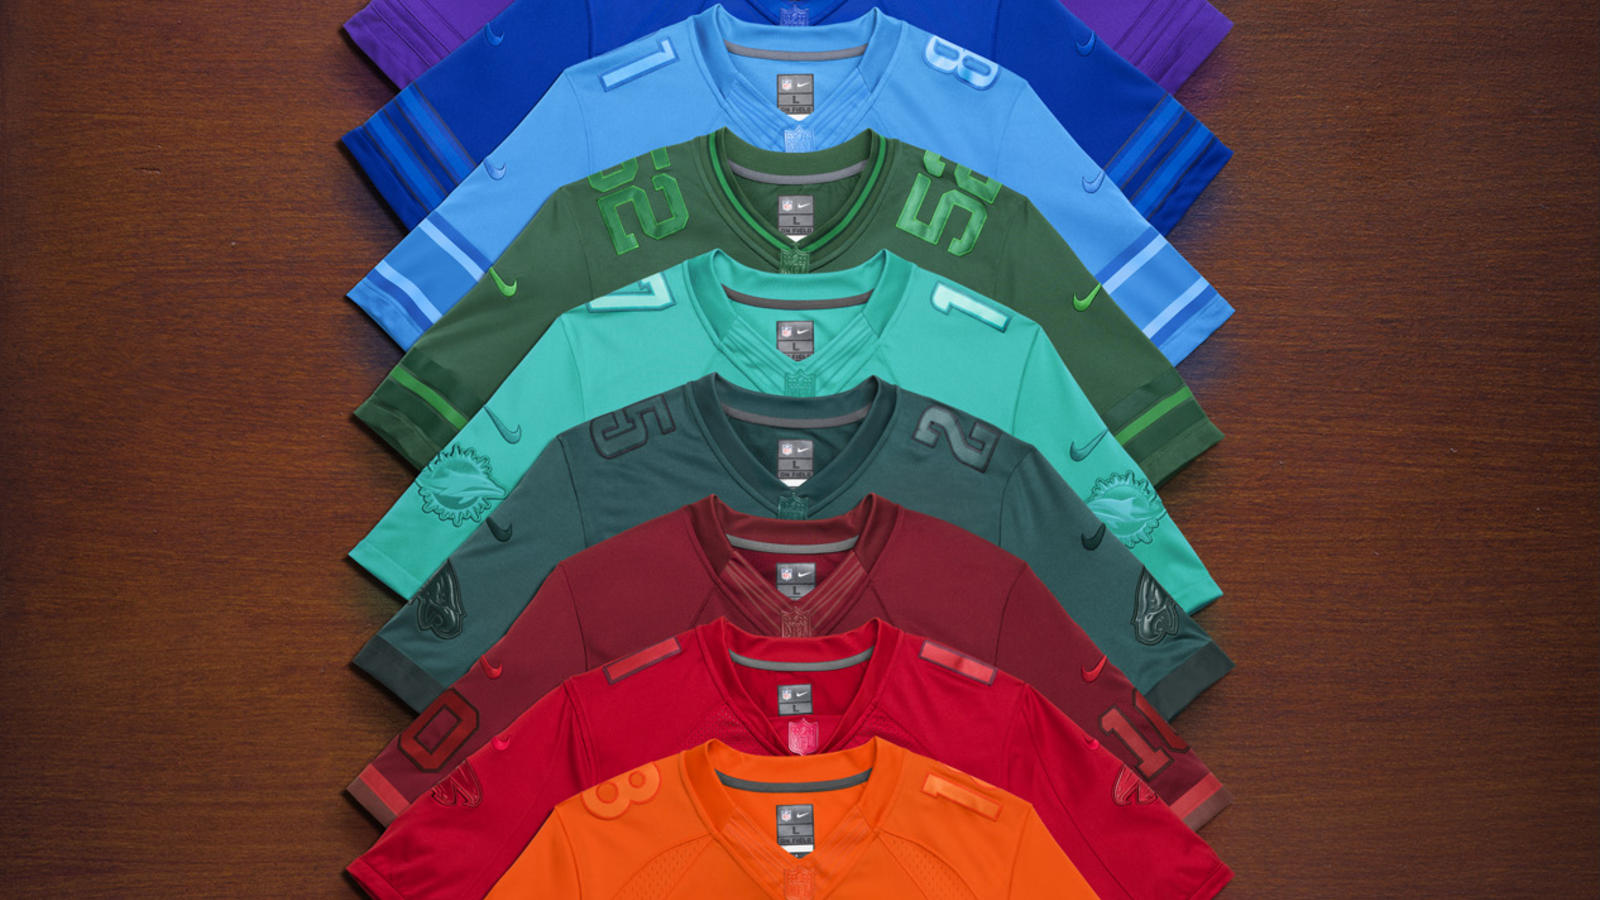 fa13_at_drenchpack_jersey_comp_vertical